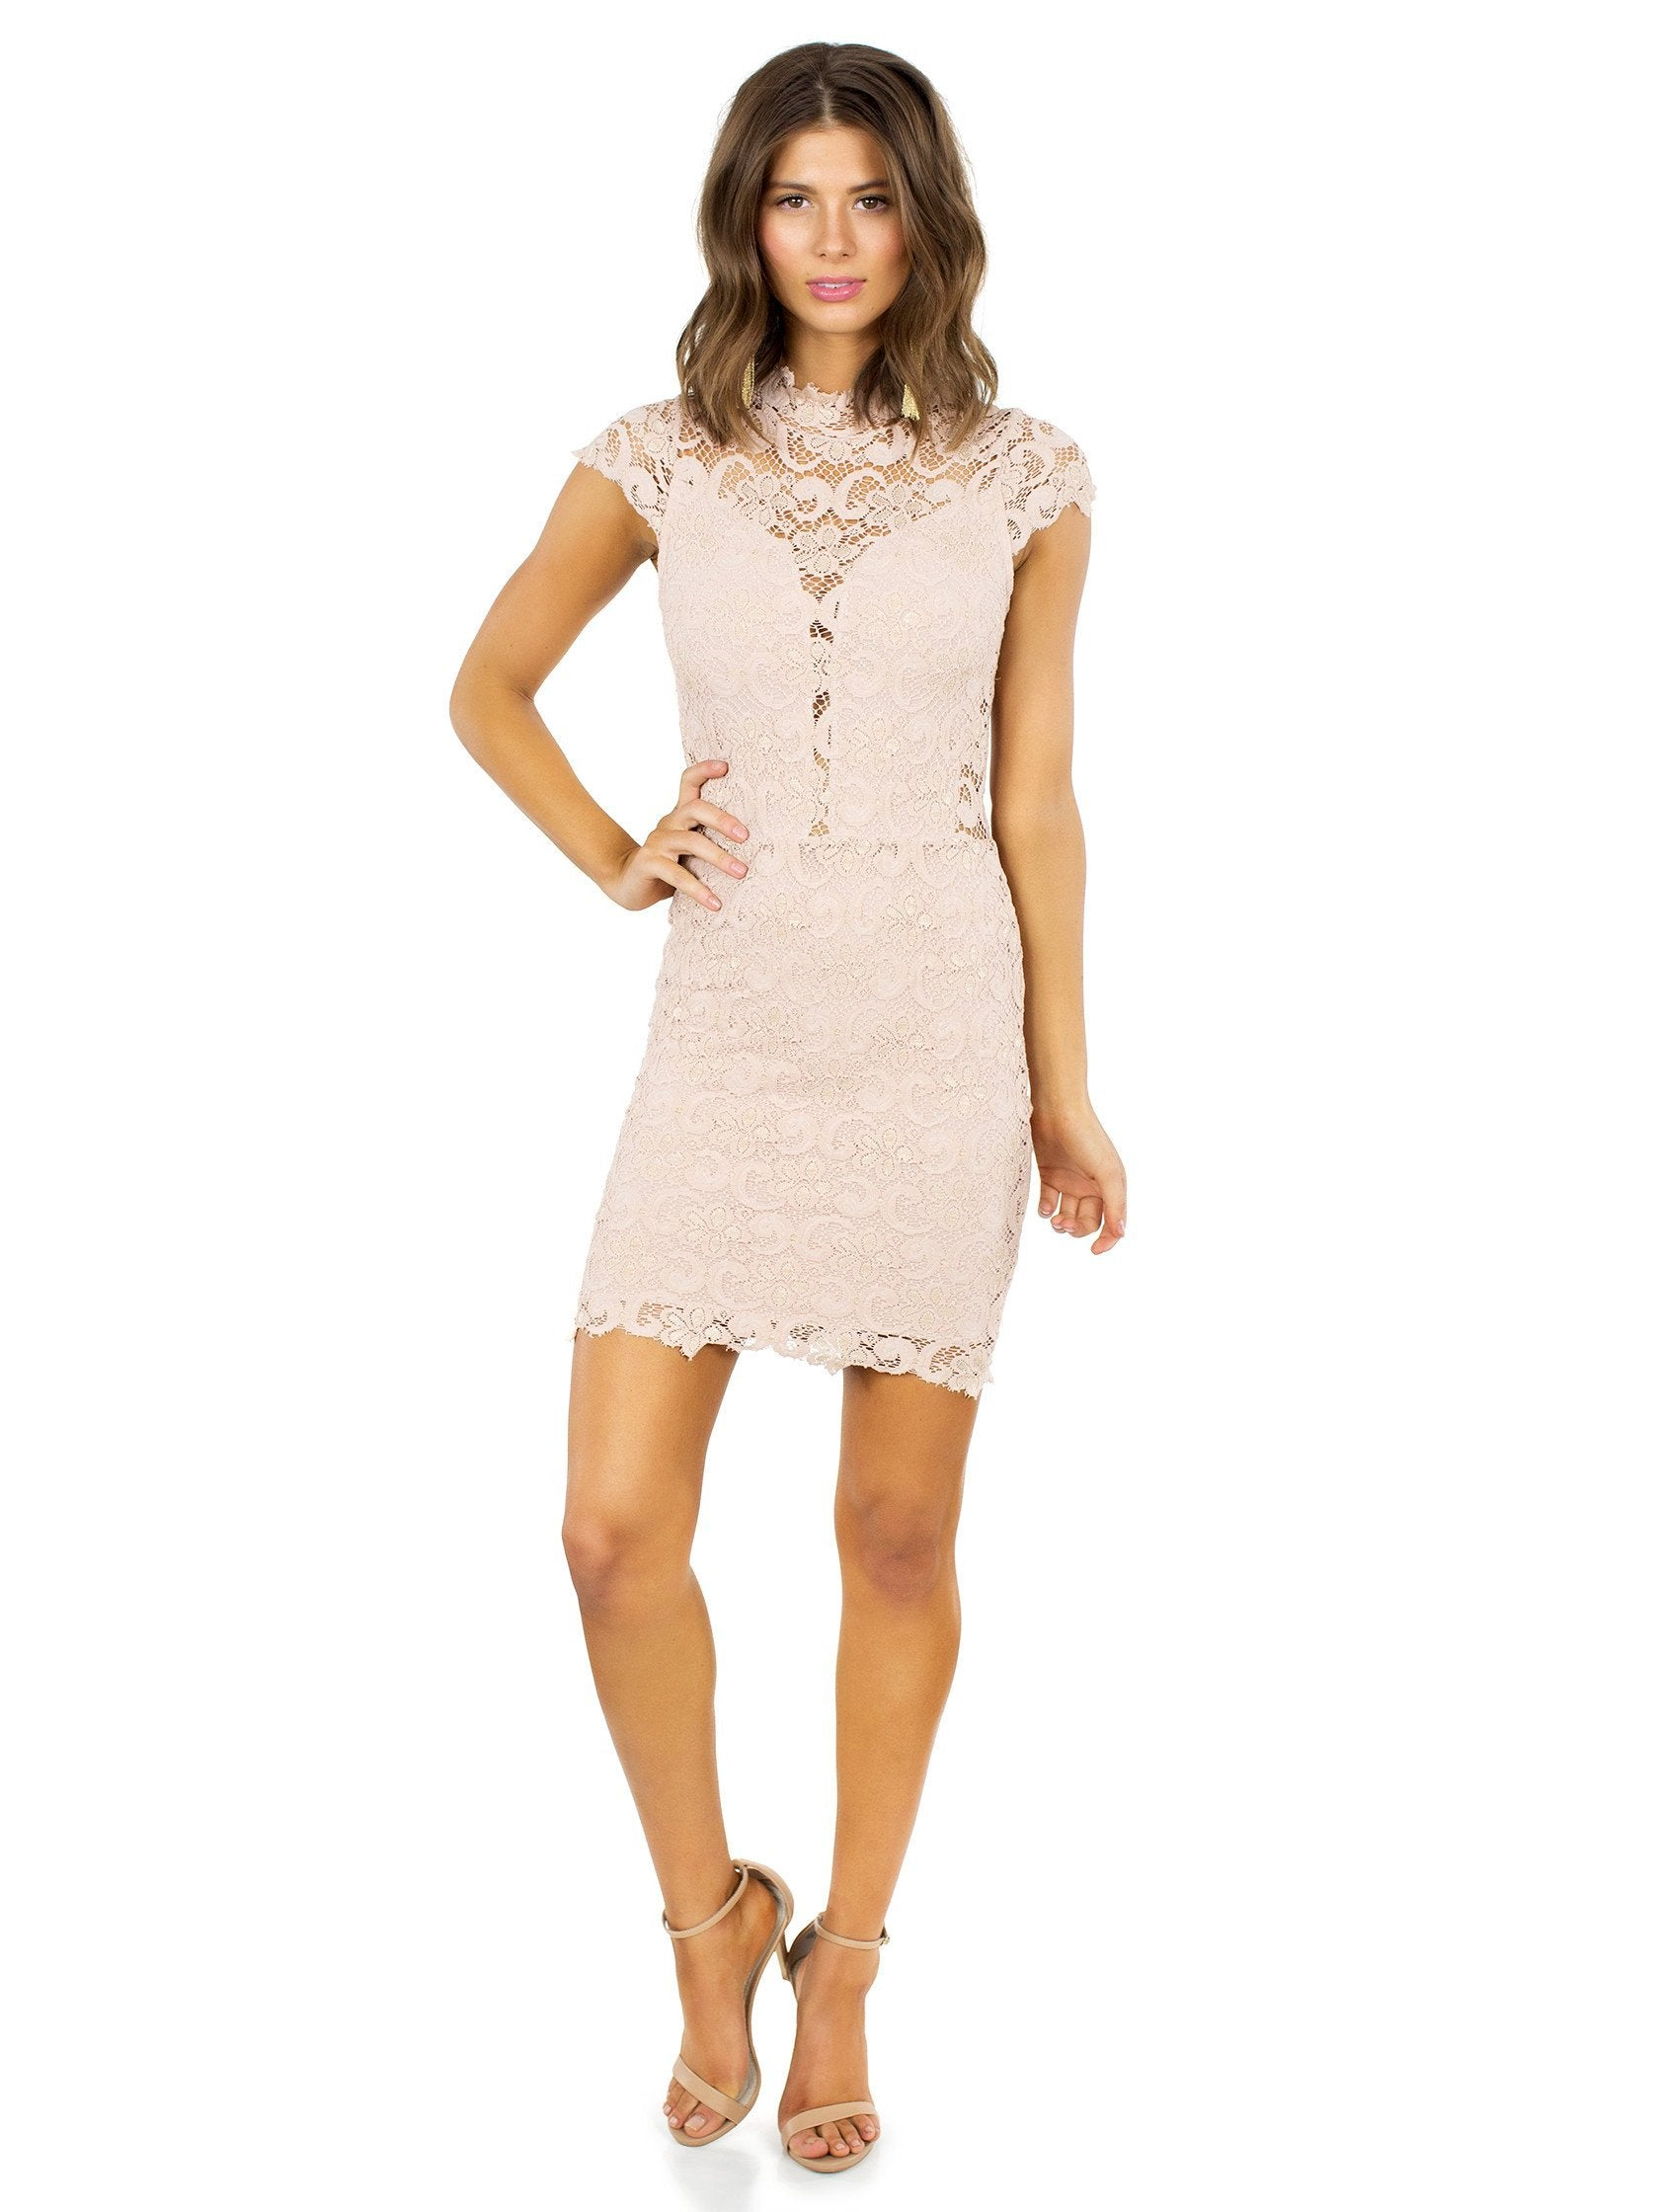 Women outfit in a dress rental from Nightcap Clothing called Dixie Lace 16th District Mini Dress